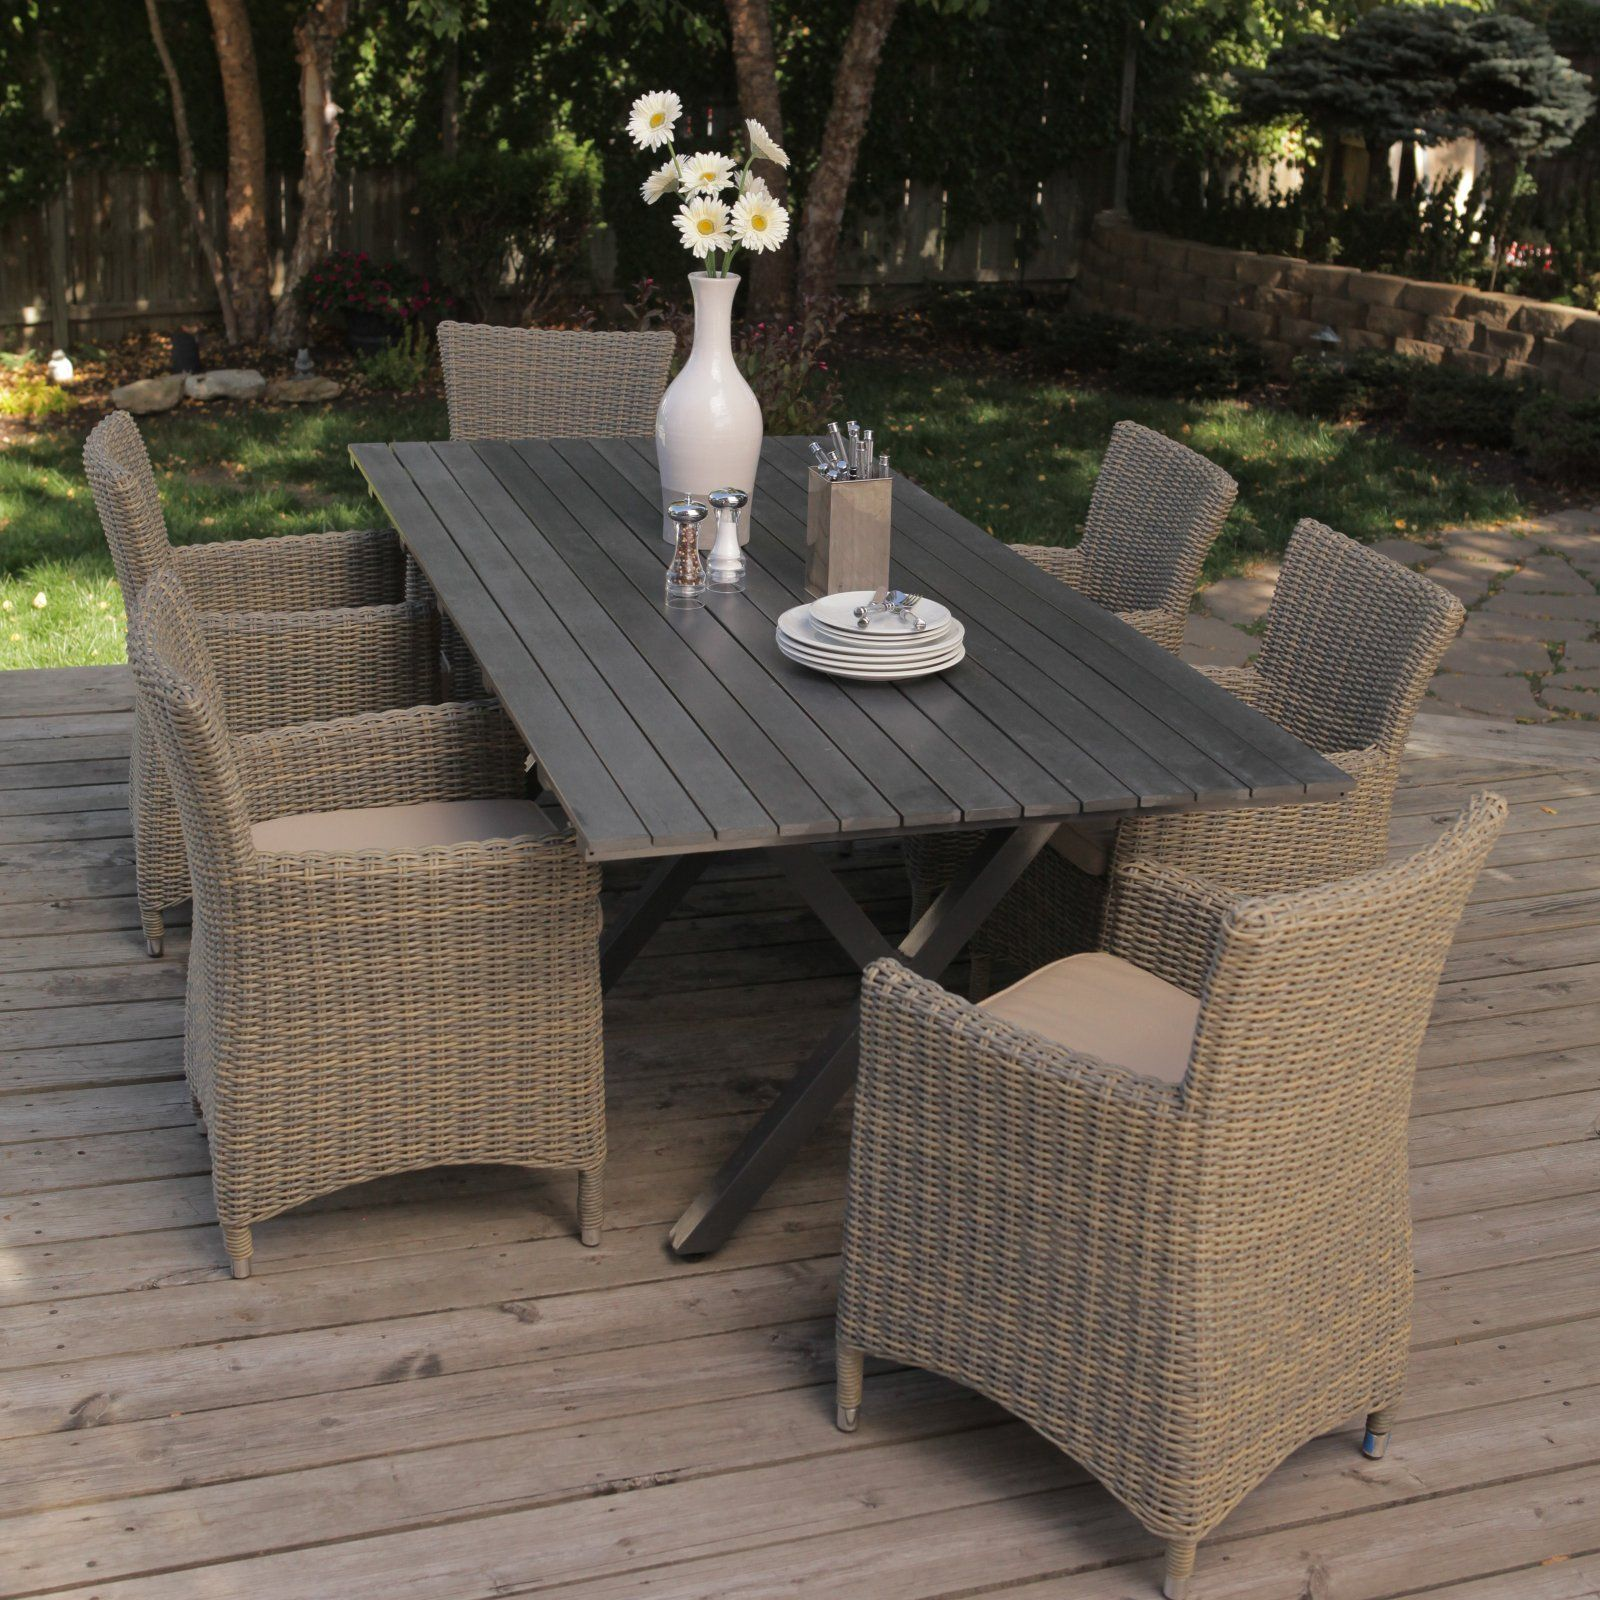 Bella All Weather Wicker Patio Dining Set Seats 6 Outdoor Sets At Hayneedle